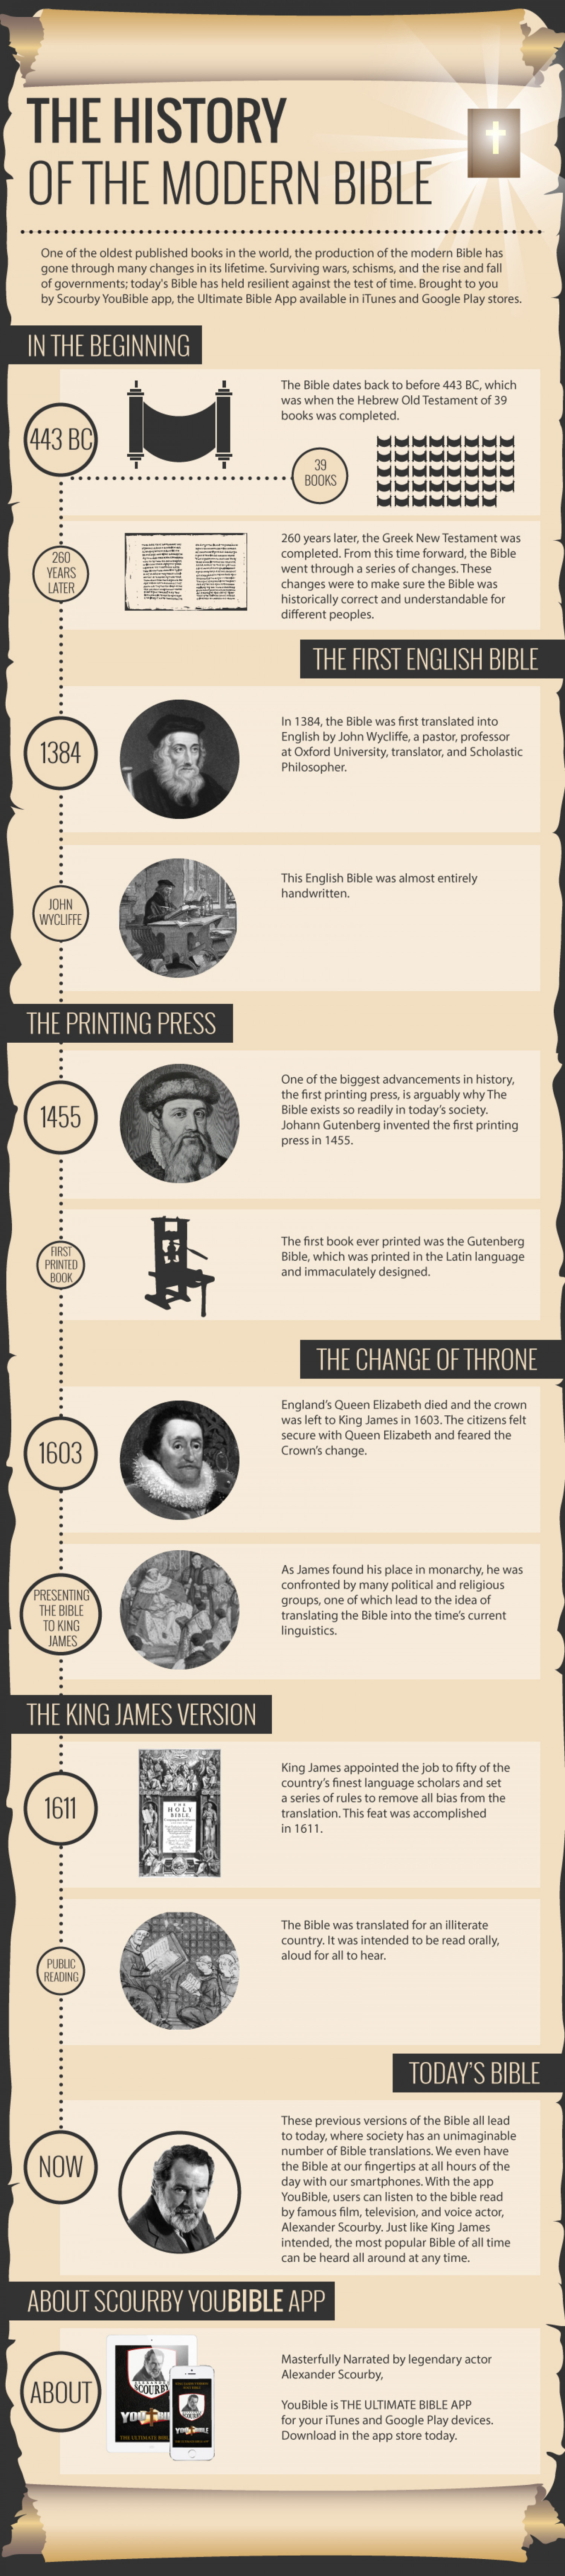 The History of the Modern Bible Infographic